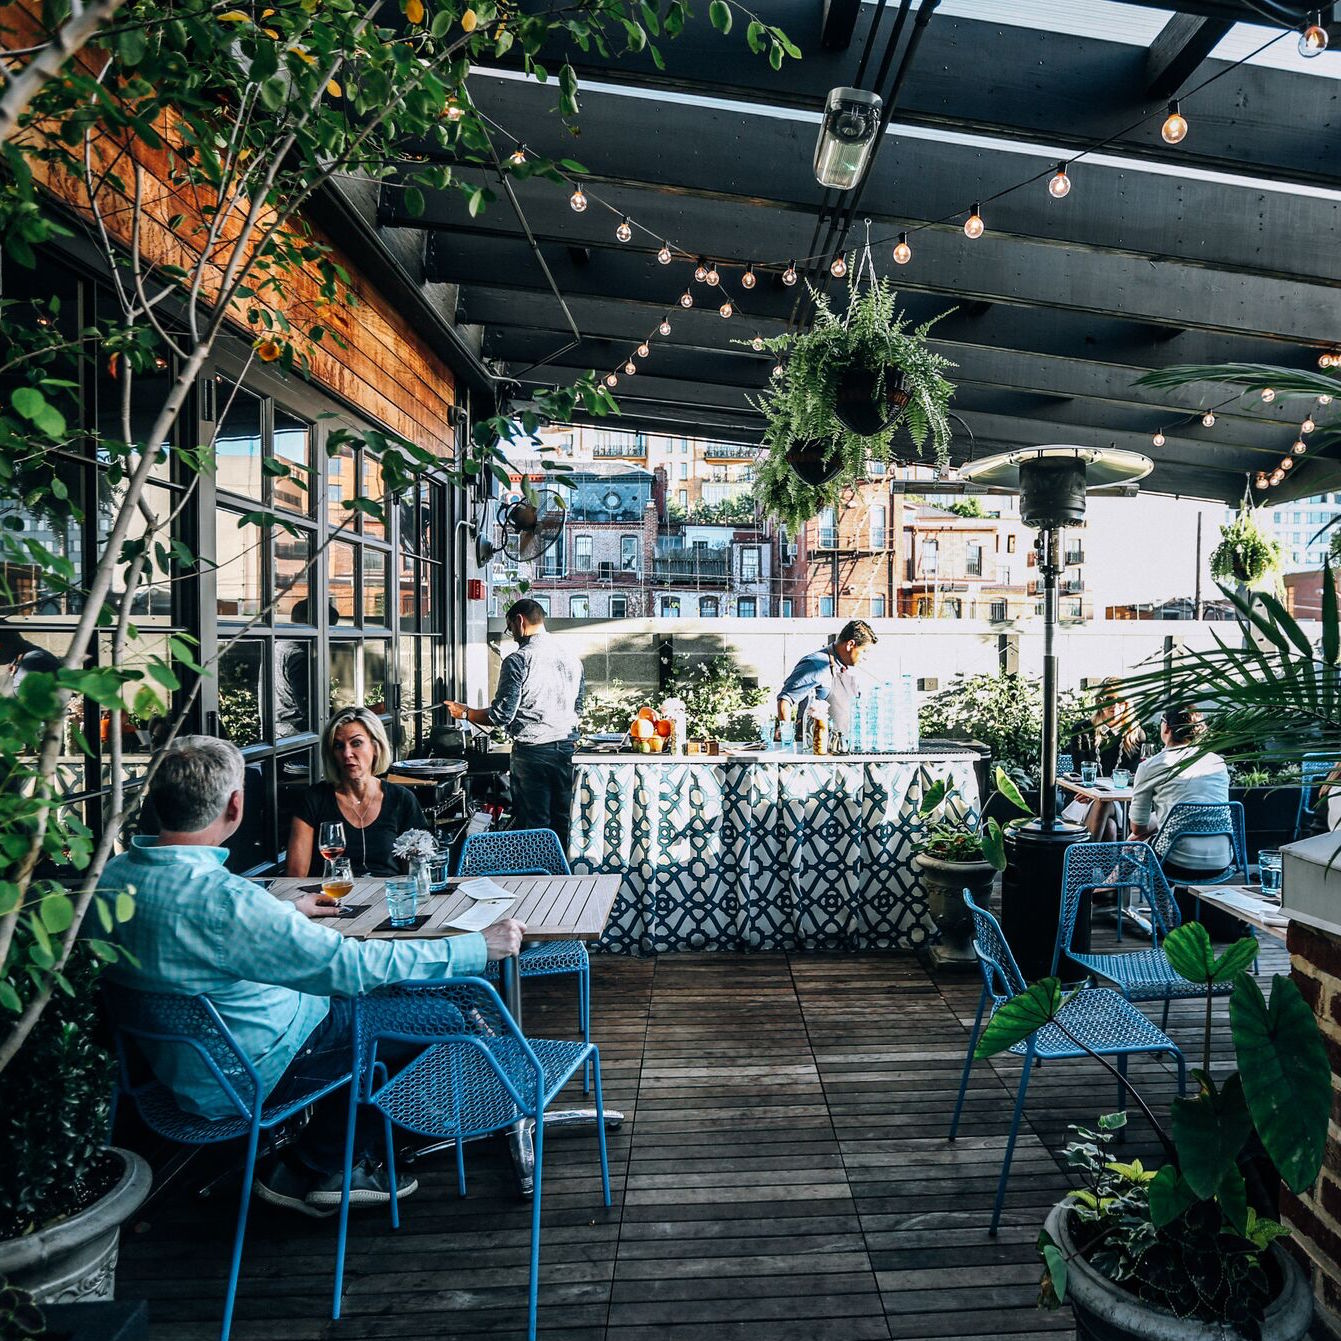 Our  Punch Garden  is outside with a garden backdrop and features creative punches and drinks alongside small bites and open seating at tables.